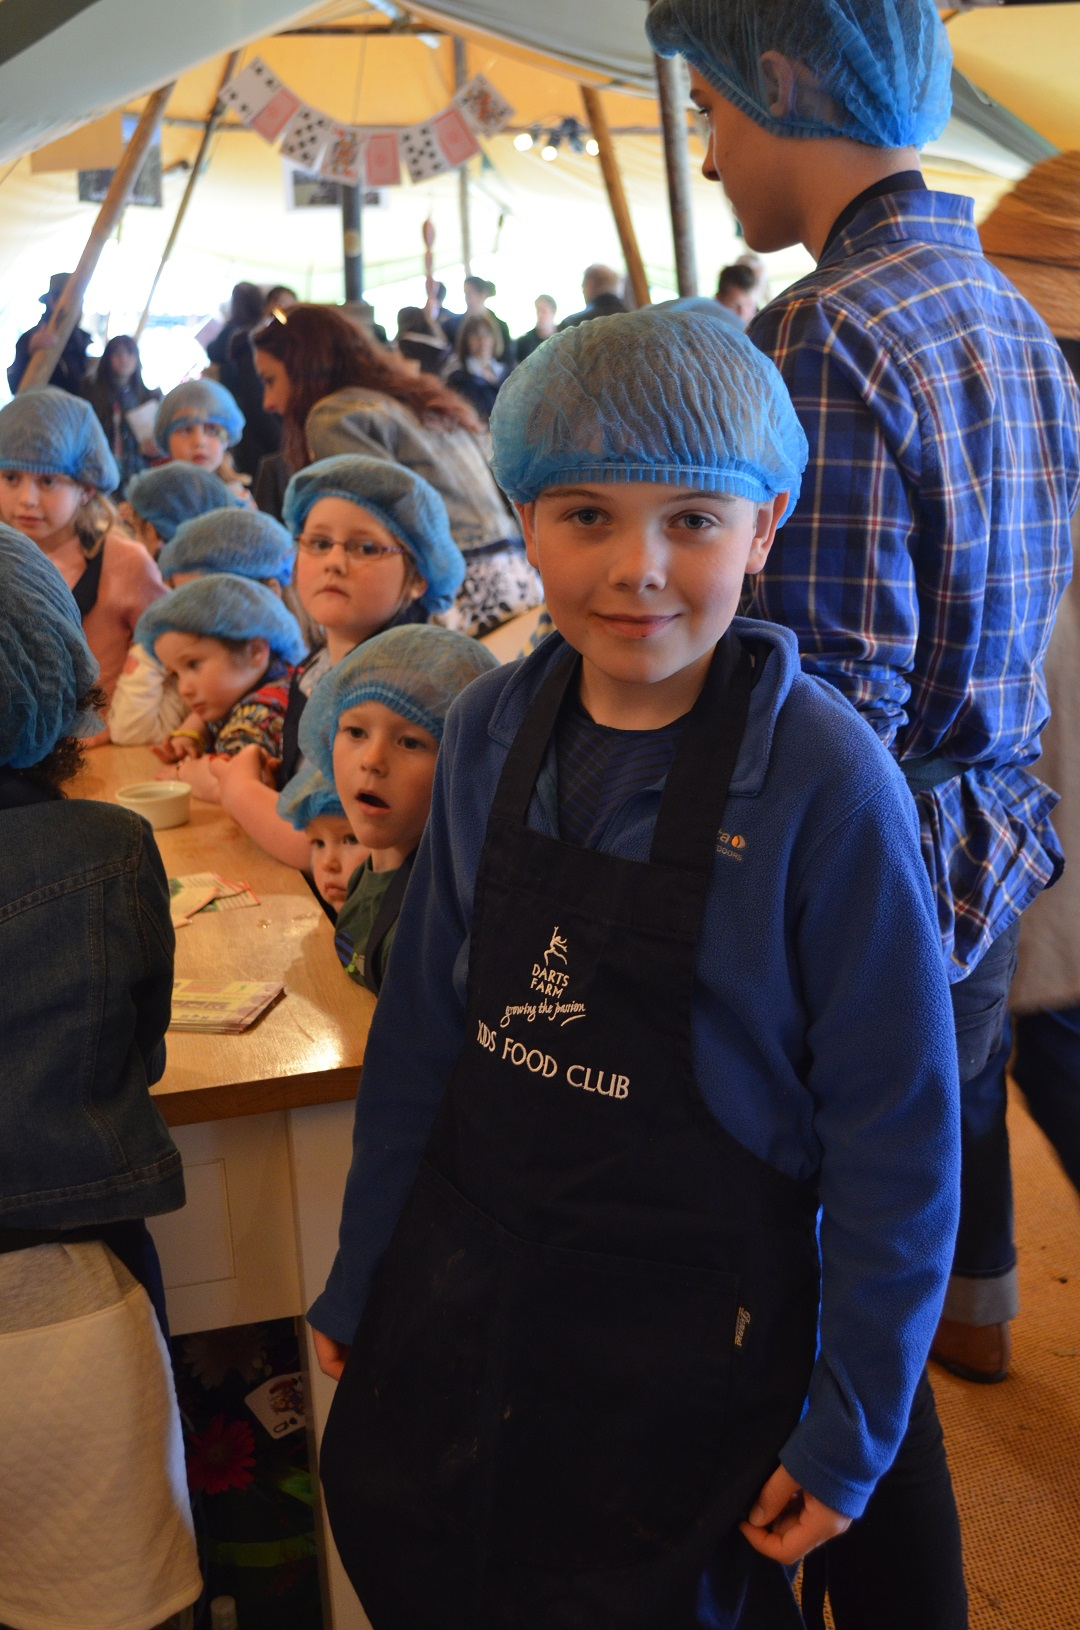 exeter-festival-of-south-west-food-and-drink-dan-chocolate-crispy-cakes